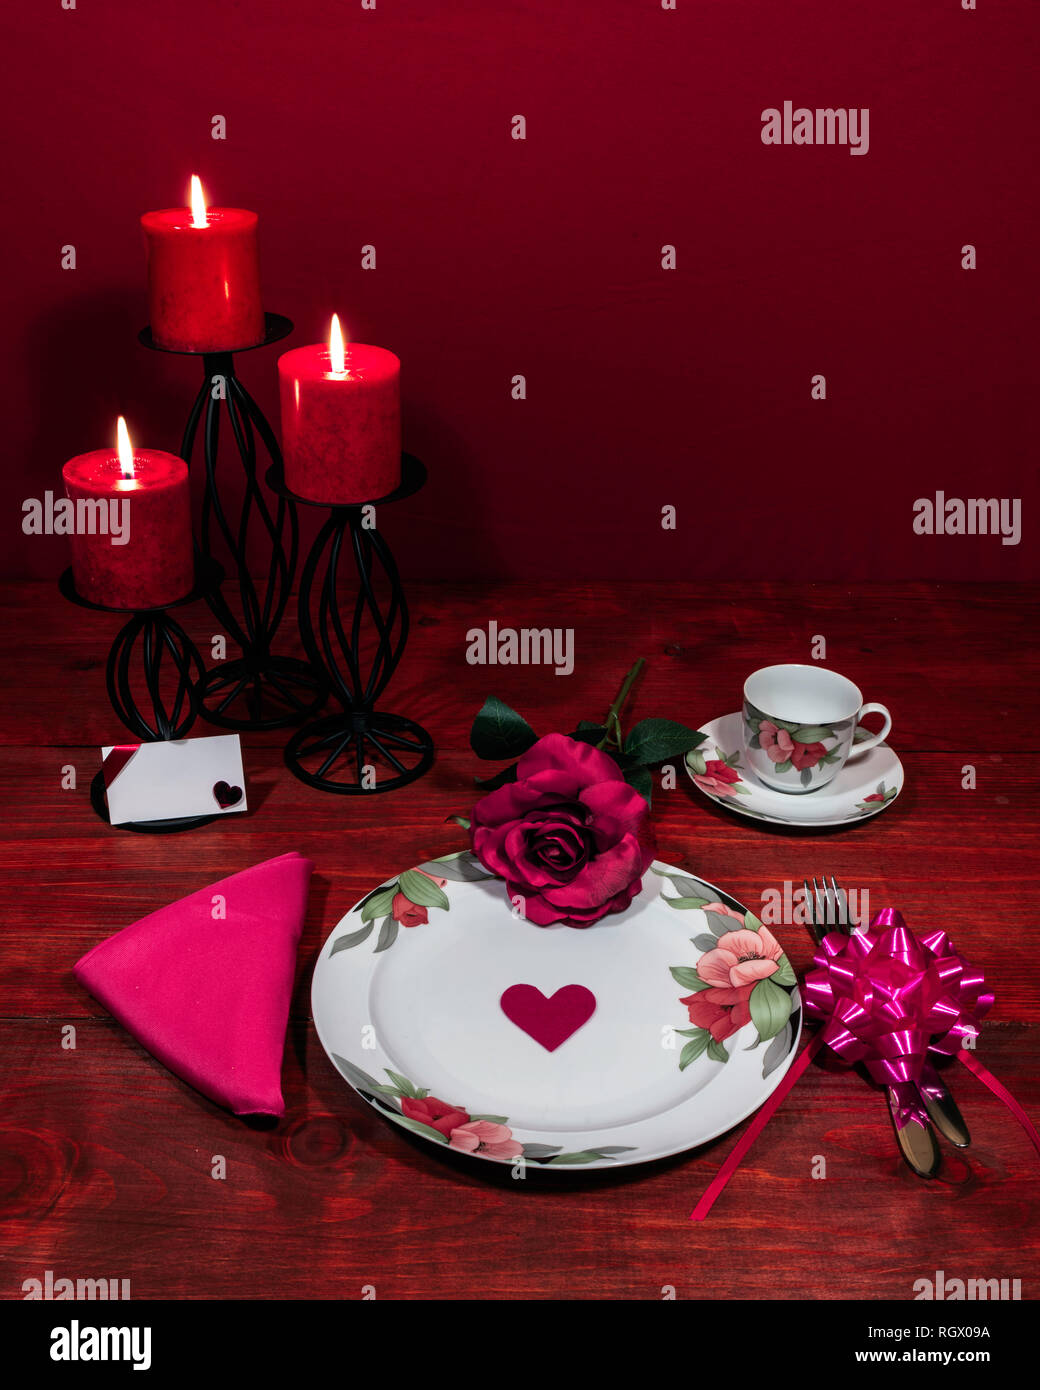 Floral pattern fine china dinnerware with matching plate, cup and saucer. pink rose, pink napkin, silverware, red candles and card Stock Photo